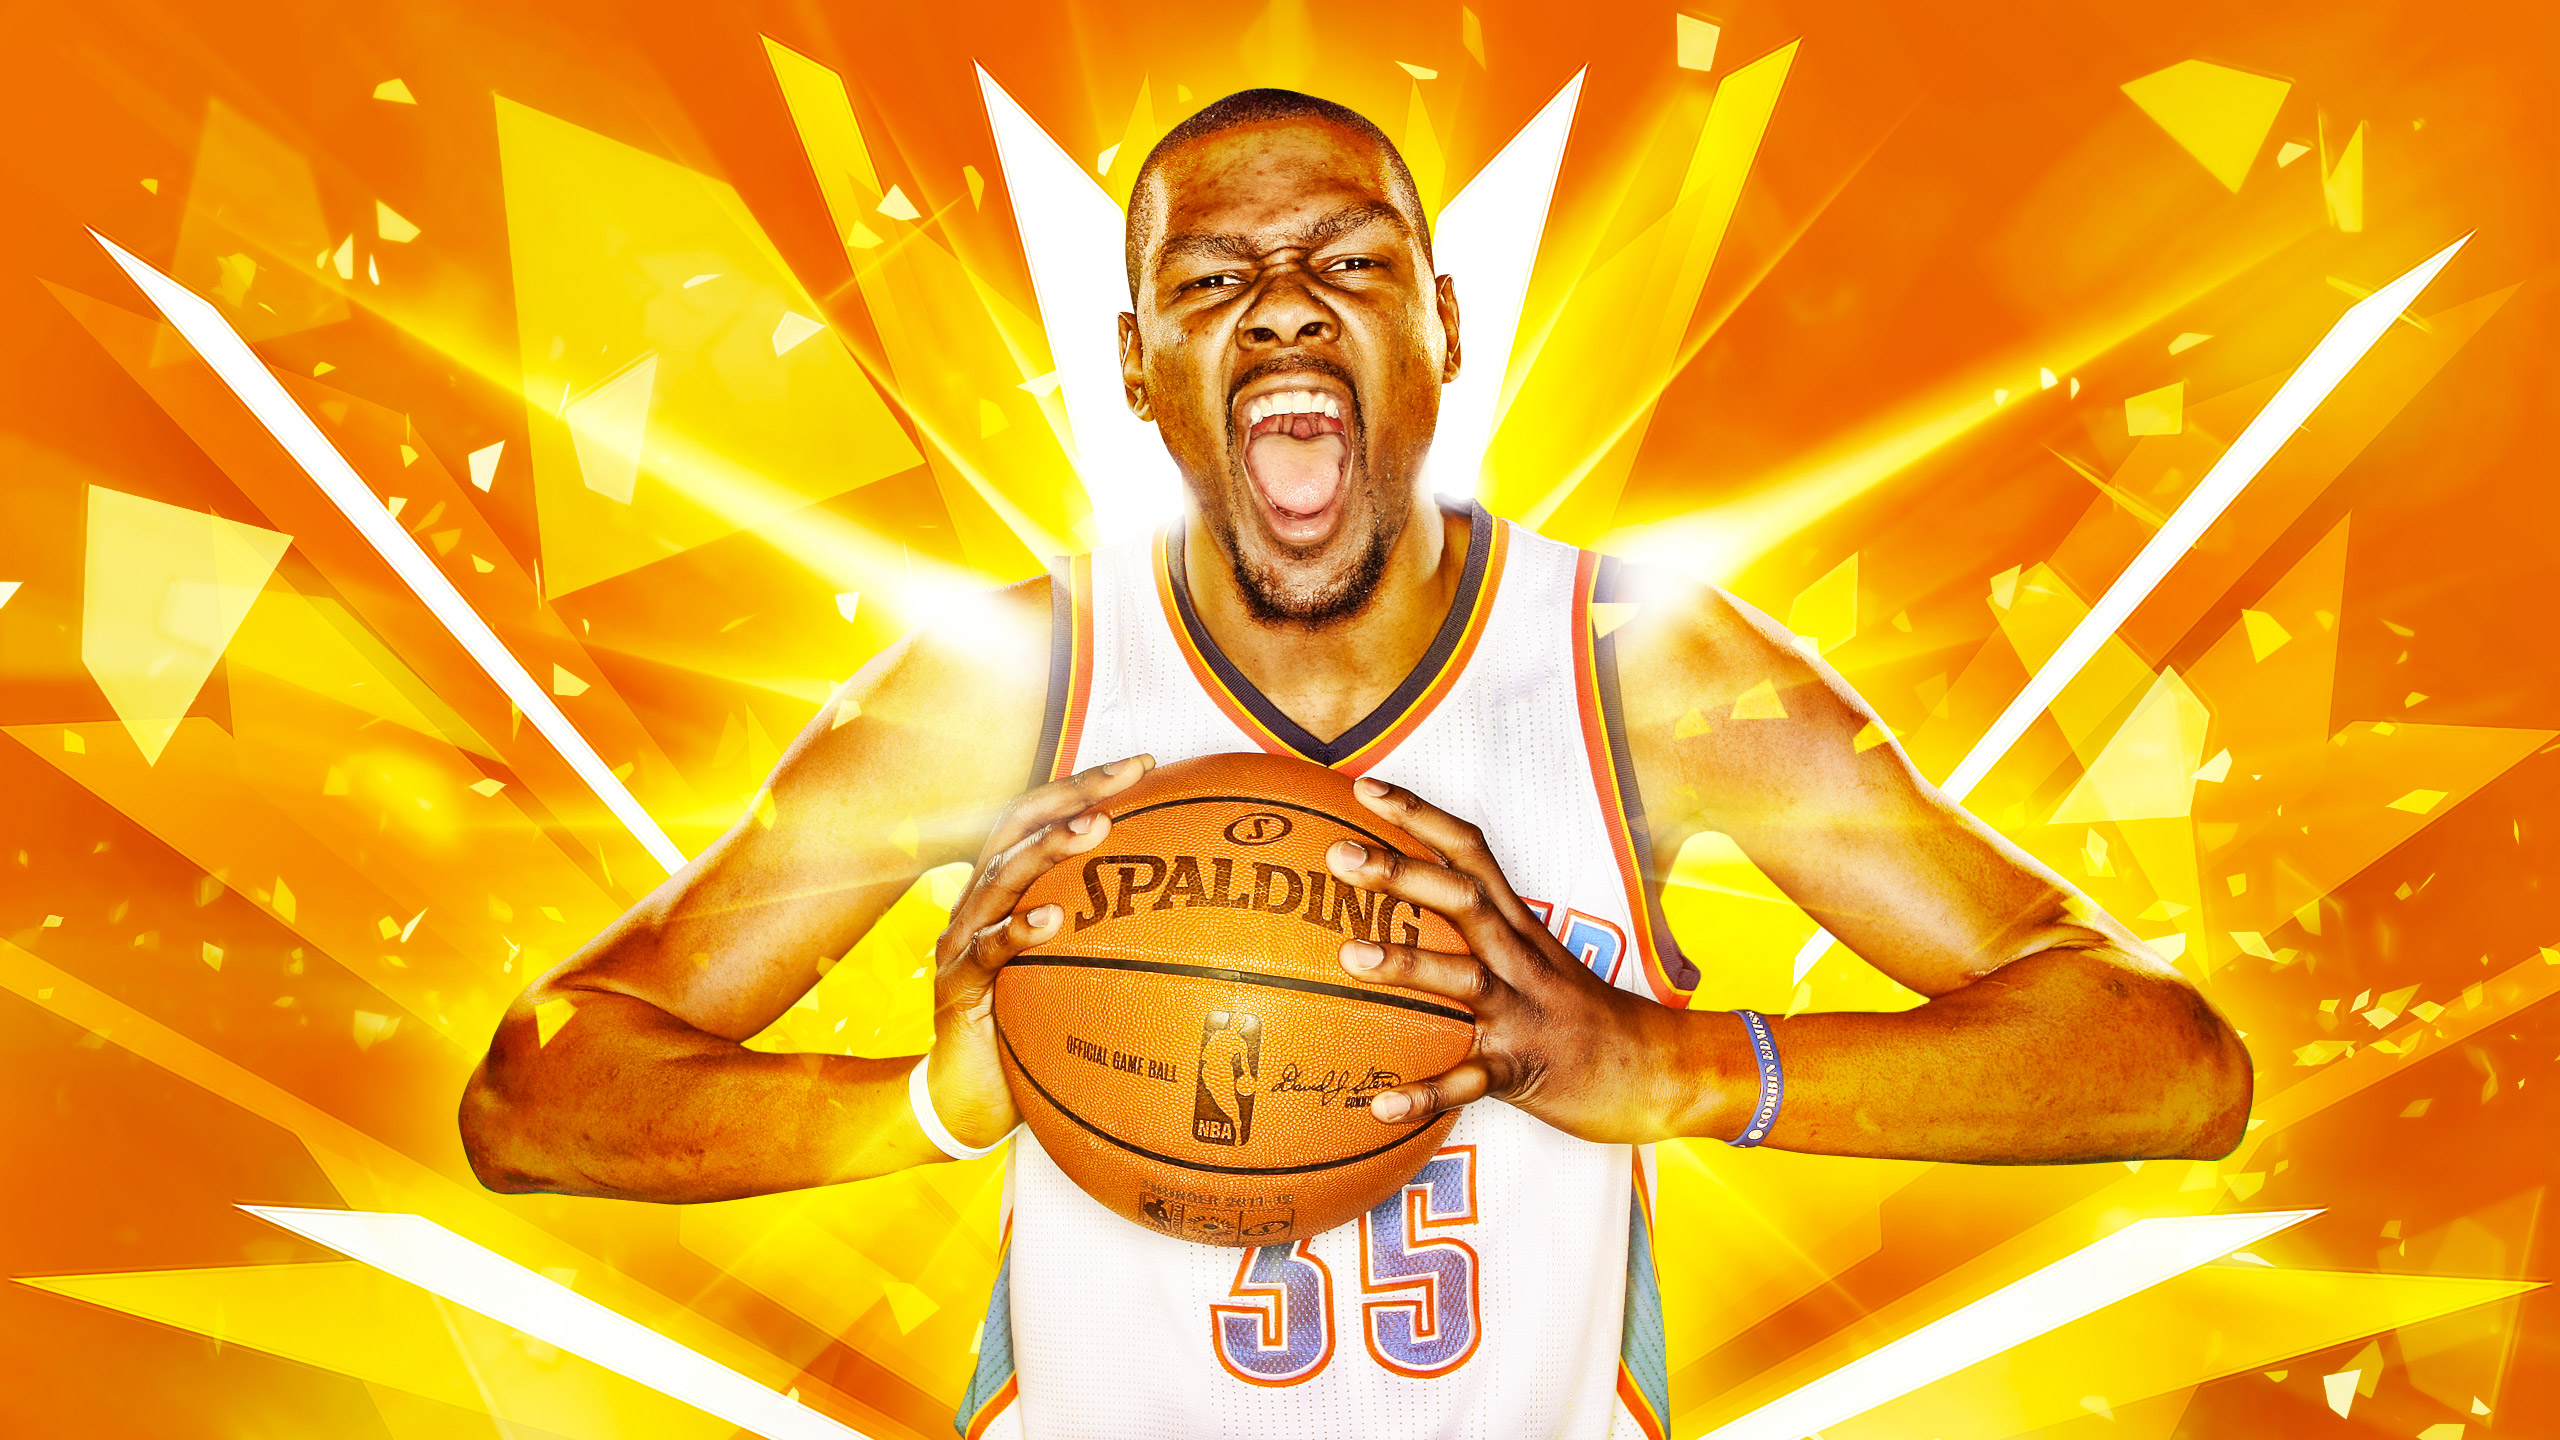 Kevin Durant HD Wallpaper | Background Image | 2560x1440 | ID:697983 - Wallpaper Abyss